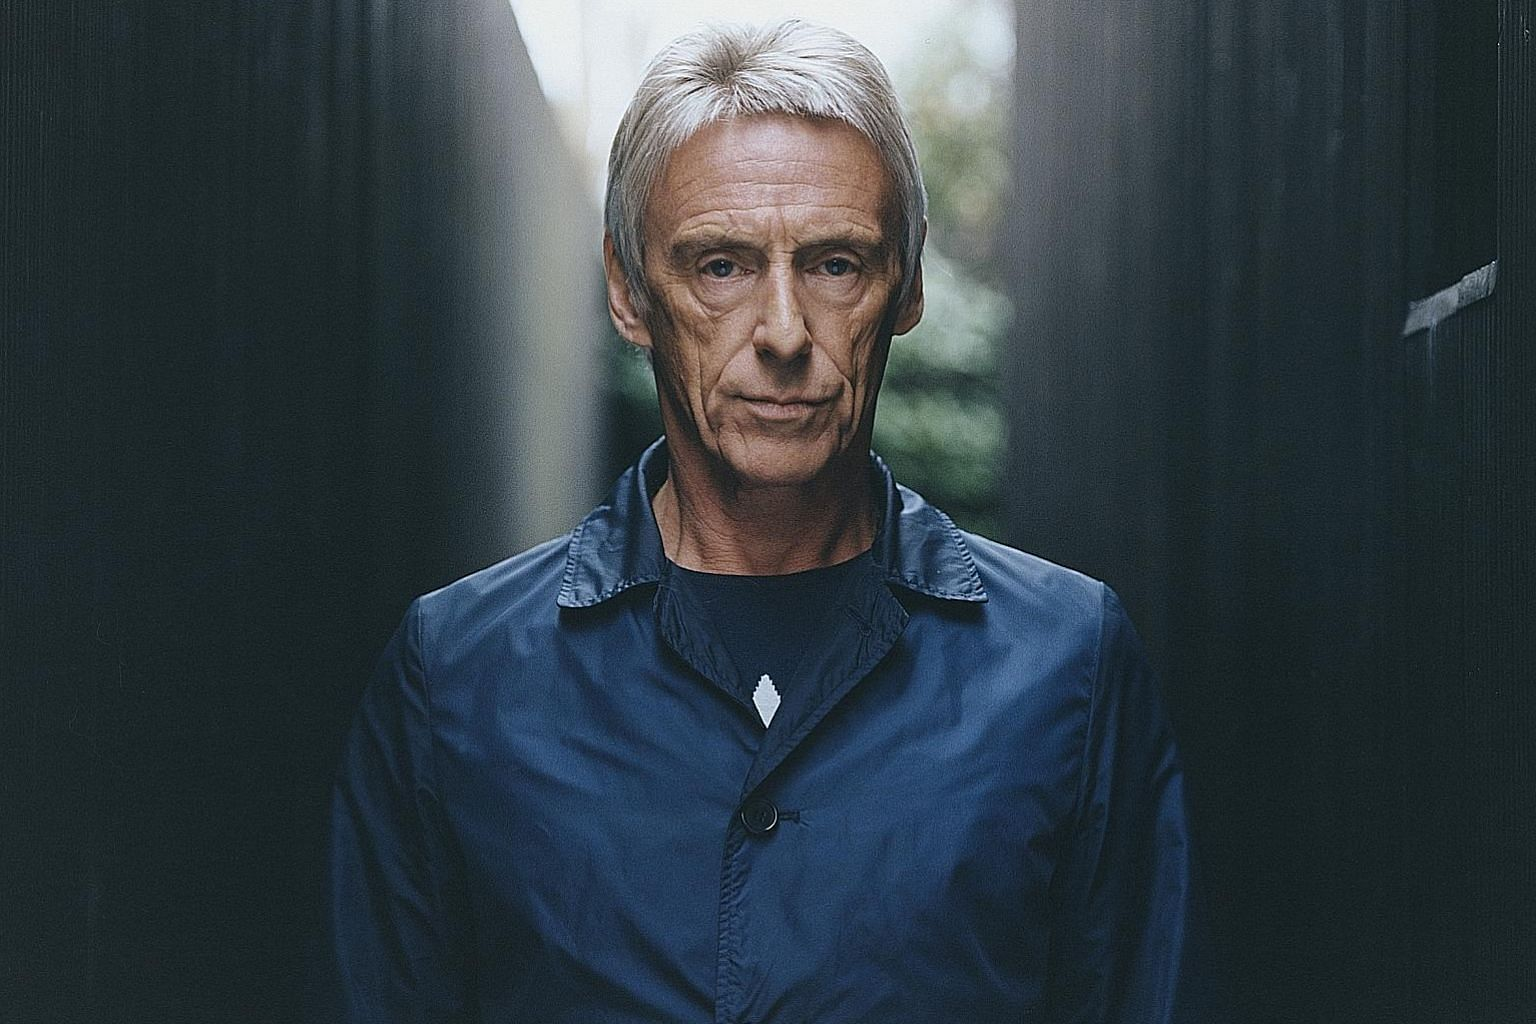 Paul Weller taps a wide range of genres from his 40-year-long discography for A Kind Revolution.